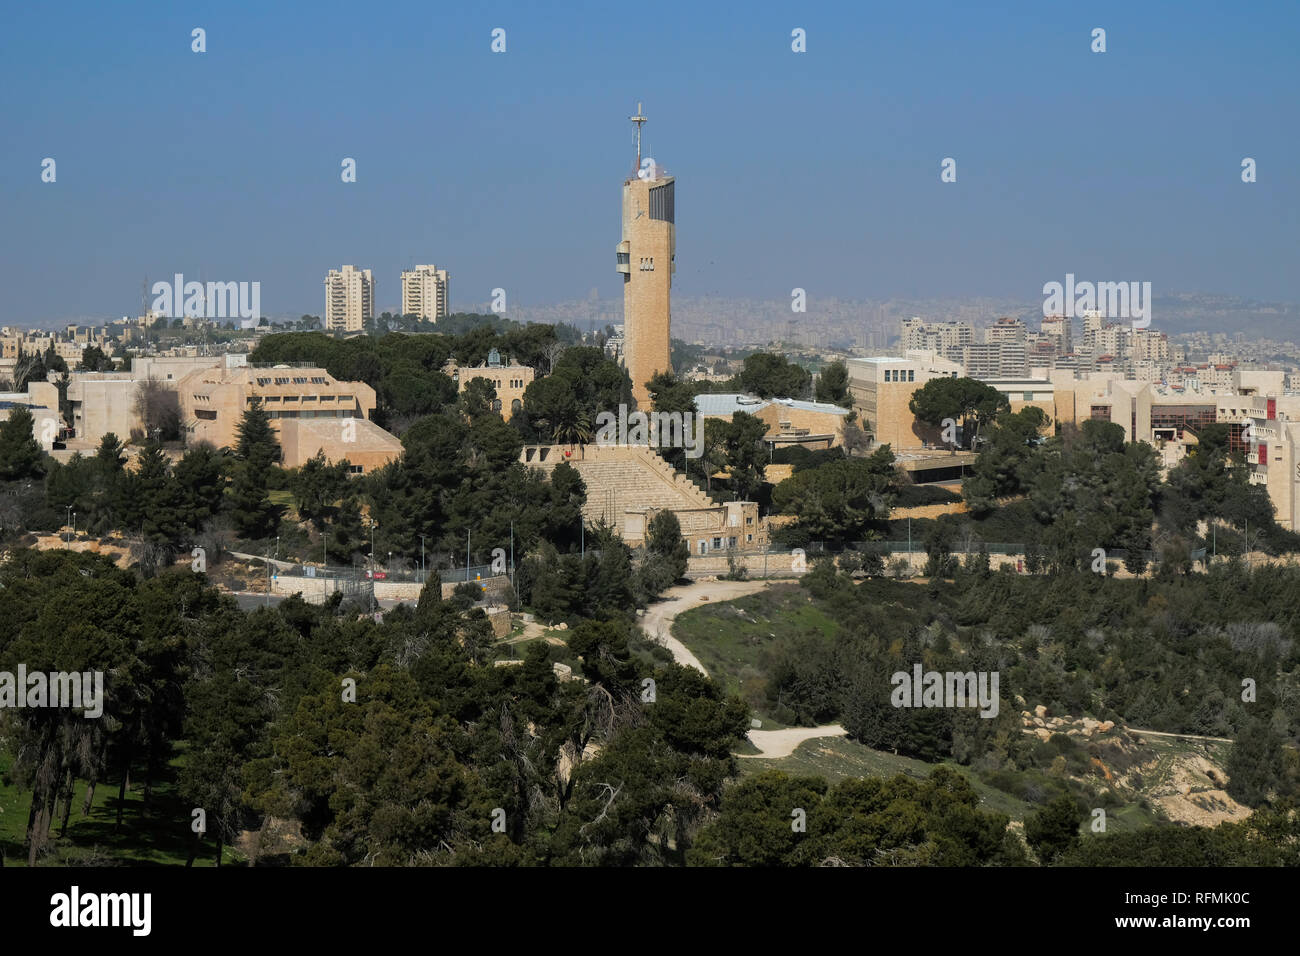 View of the Hebrew University of Jerusalem located on mount of